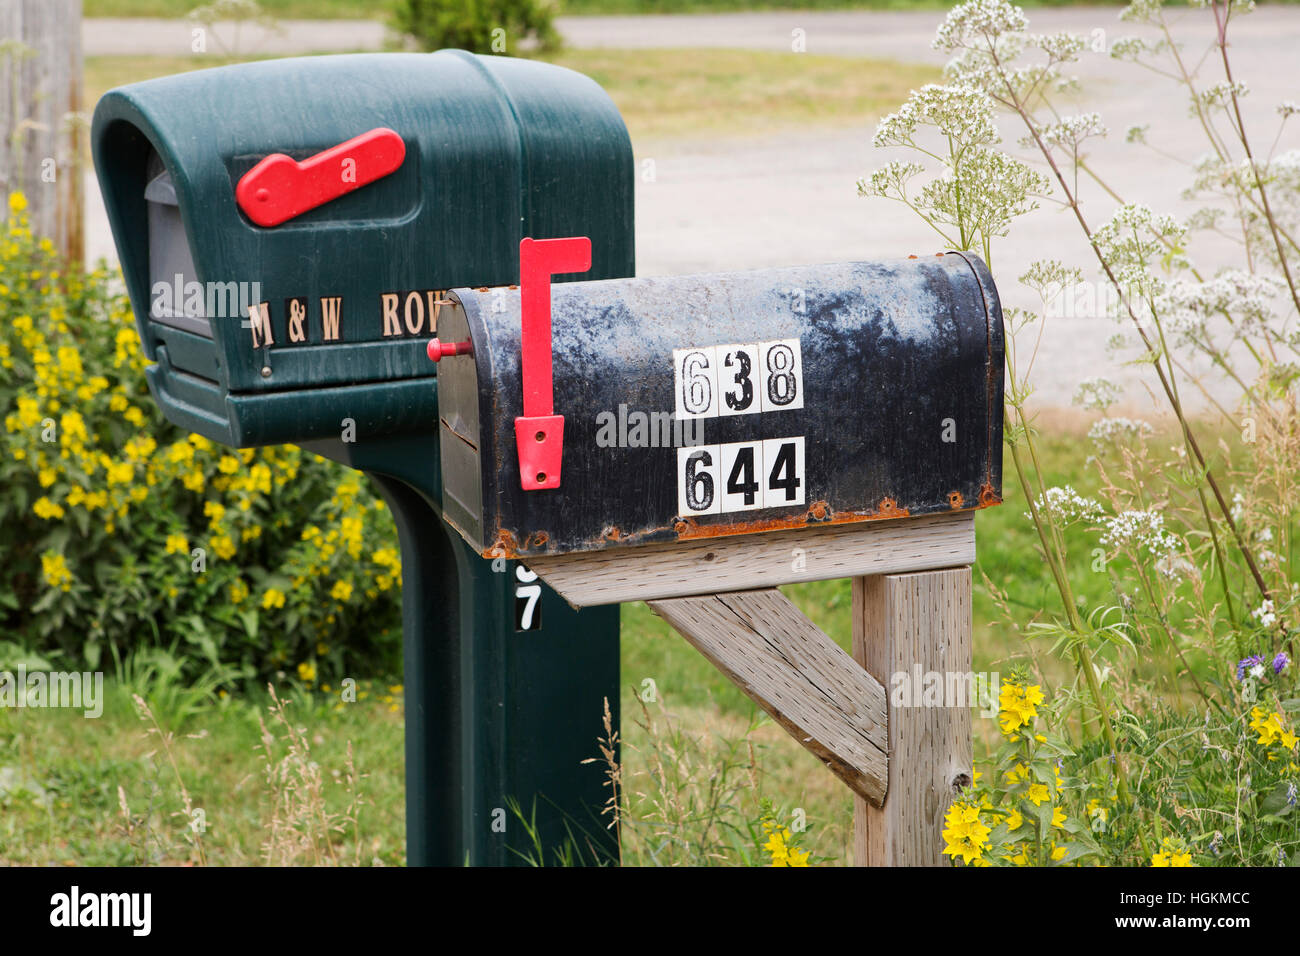 What does the red flag on the mailbox mean